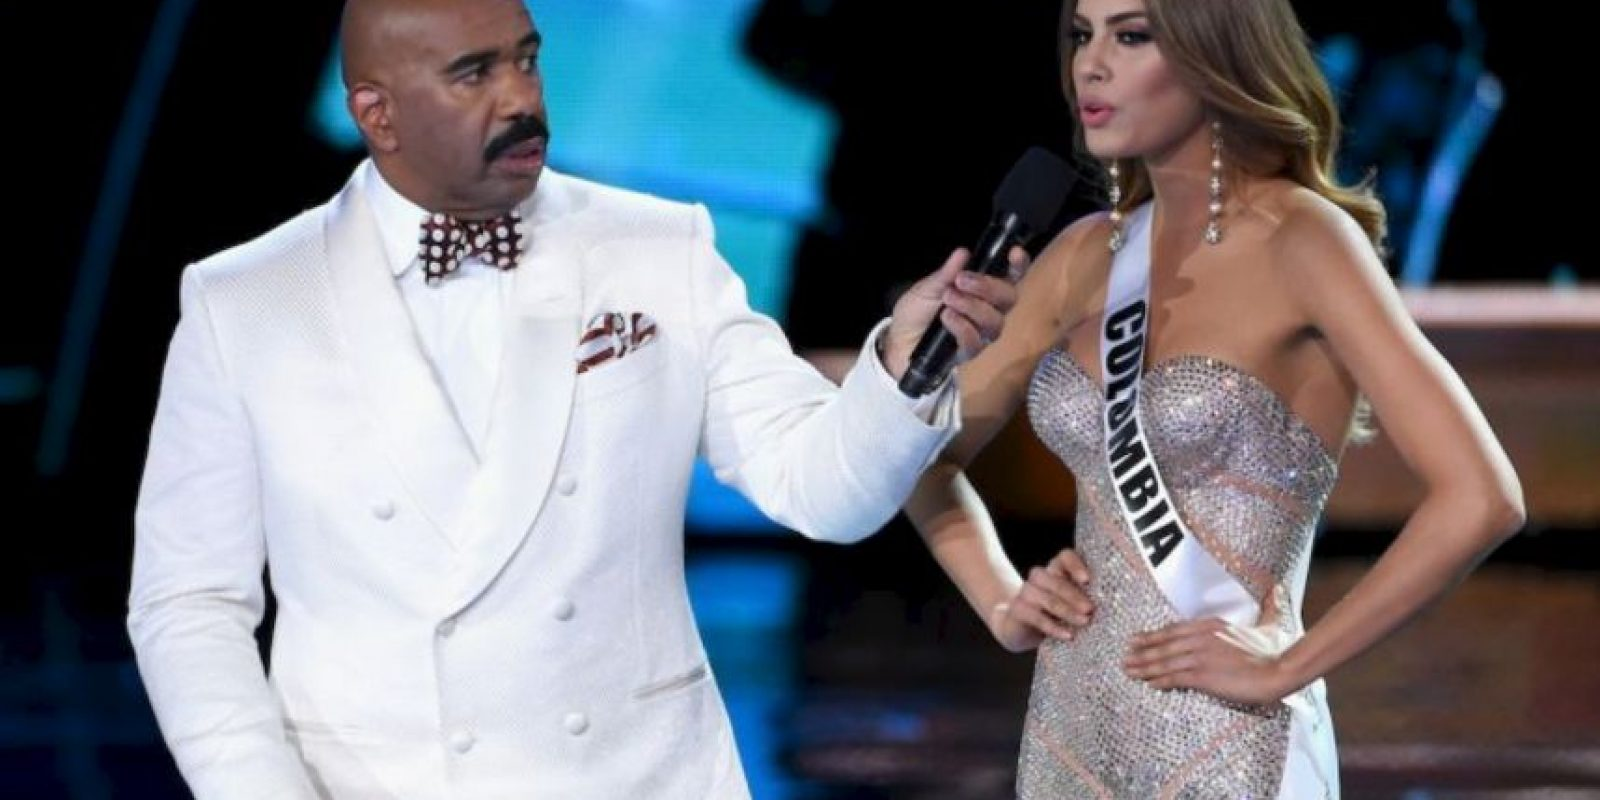 Disculpó a Steve Harvey, quién coronó por error a Miss Colombia. Foto: Getty Images